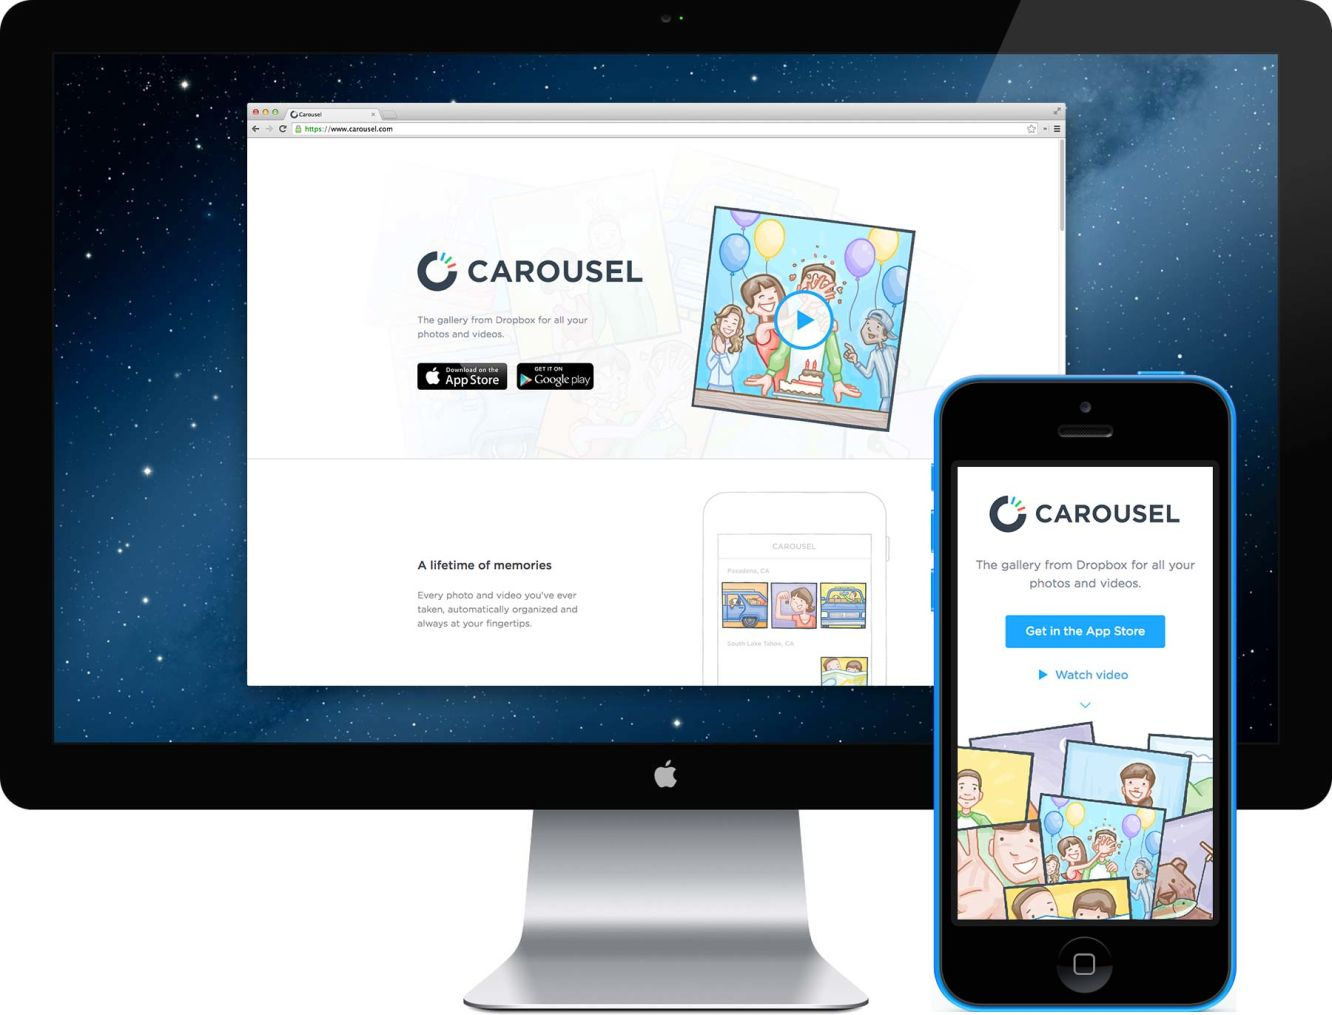 Carousel devices